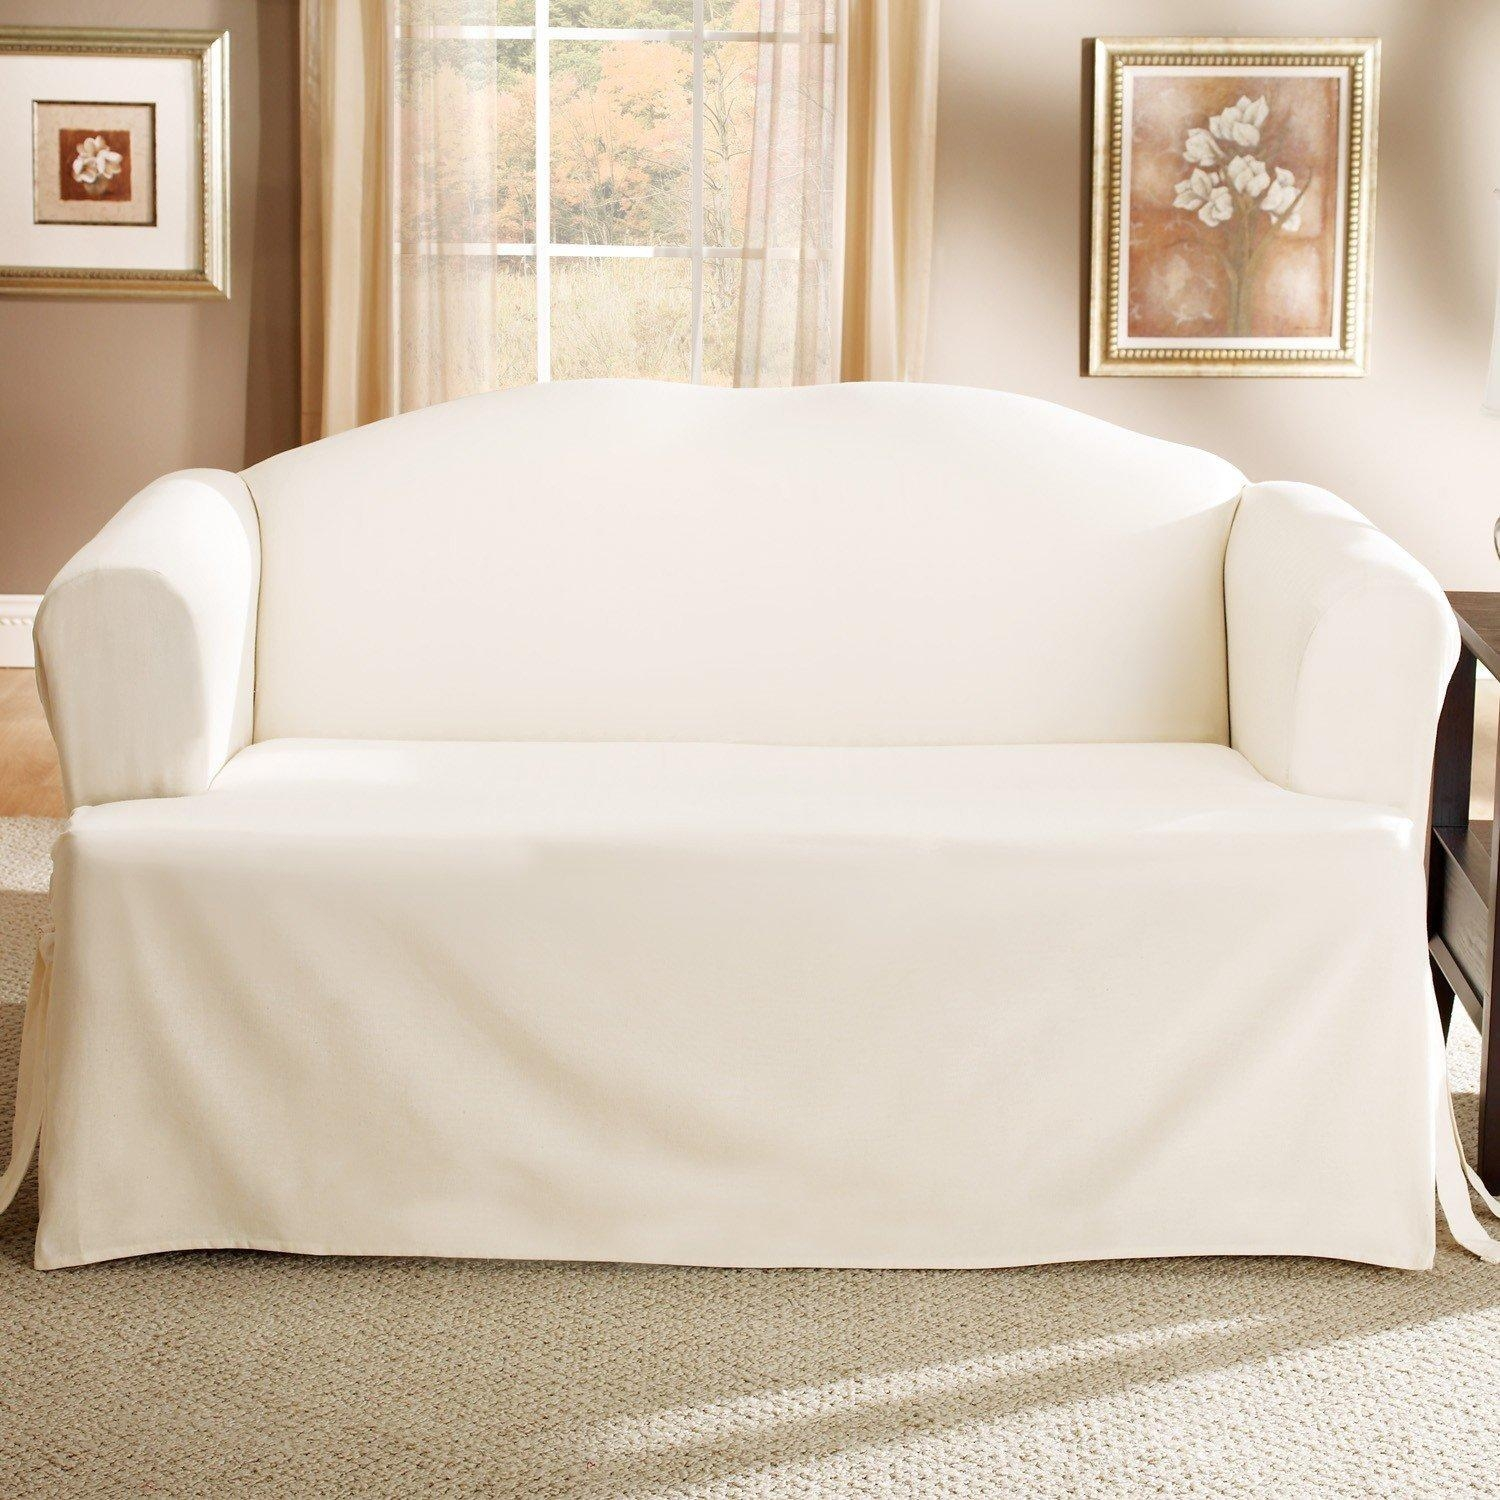 Furniture: Couch And Loveseat Covers | Slipcovers For Sectional Intended For Slip Covers For Love Seats (View 15 of 20)